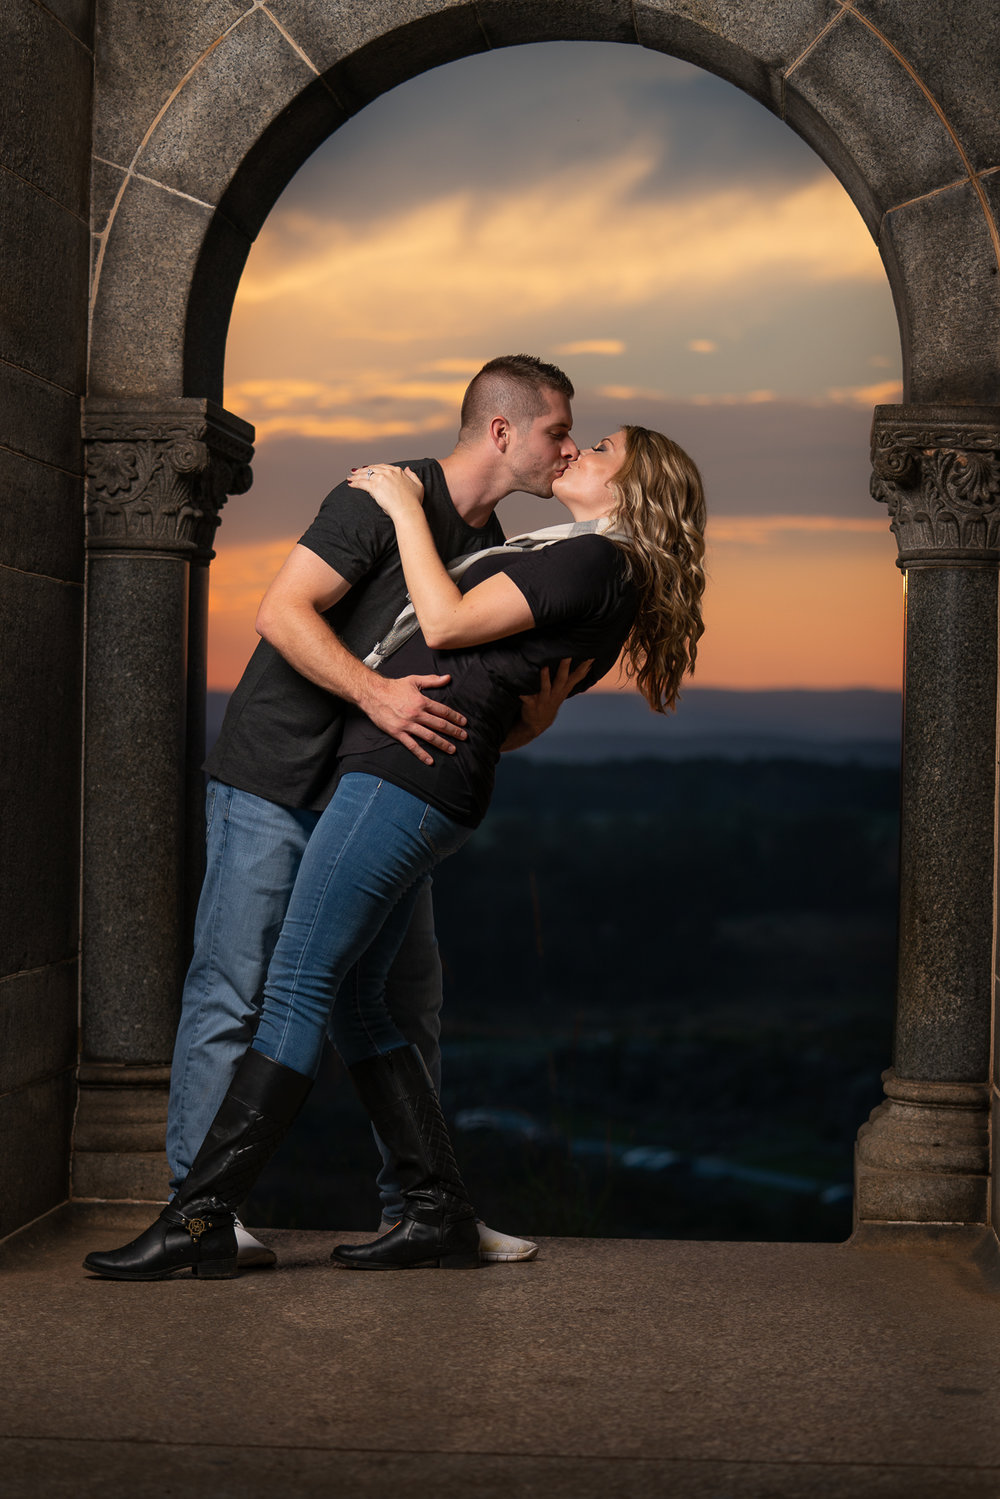 Sunset Engagement Session at the Castle Monument at LIttle Round Top in the Gettysburg National Military Park, Gettysburg, PA.